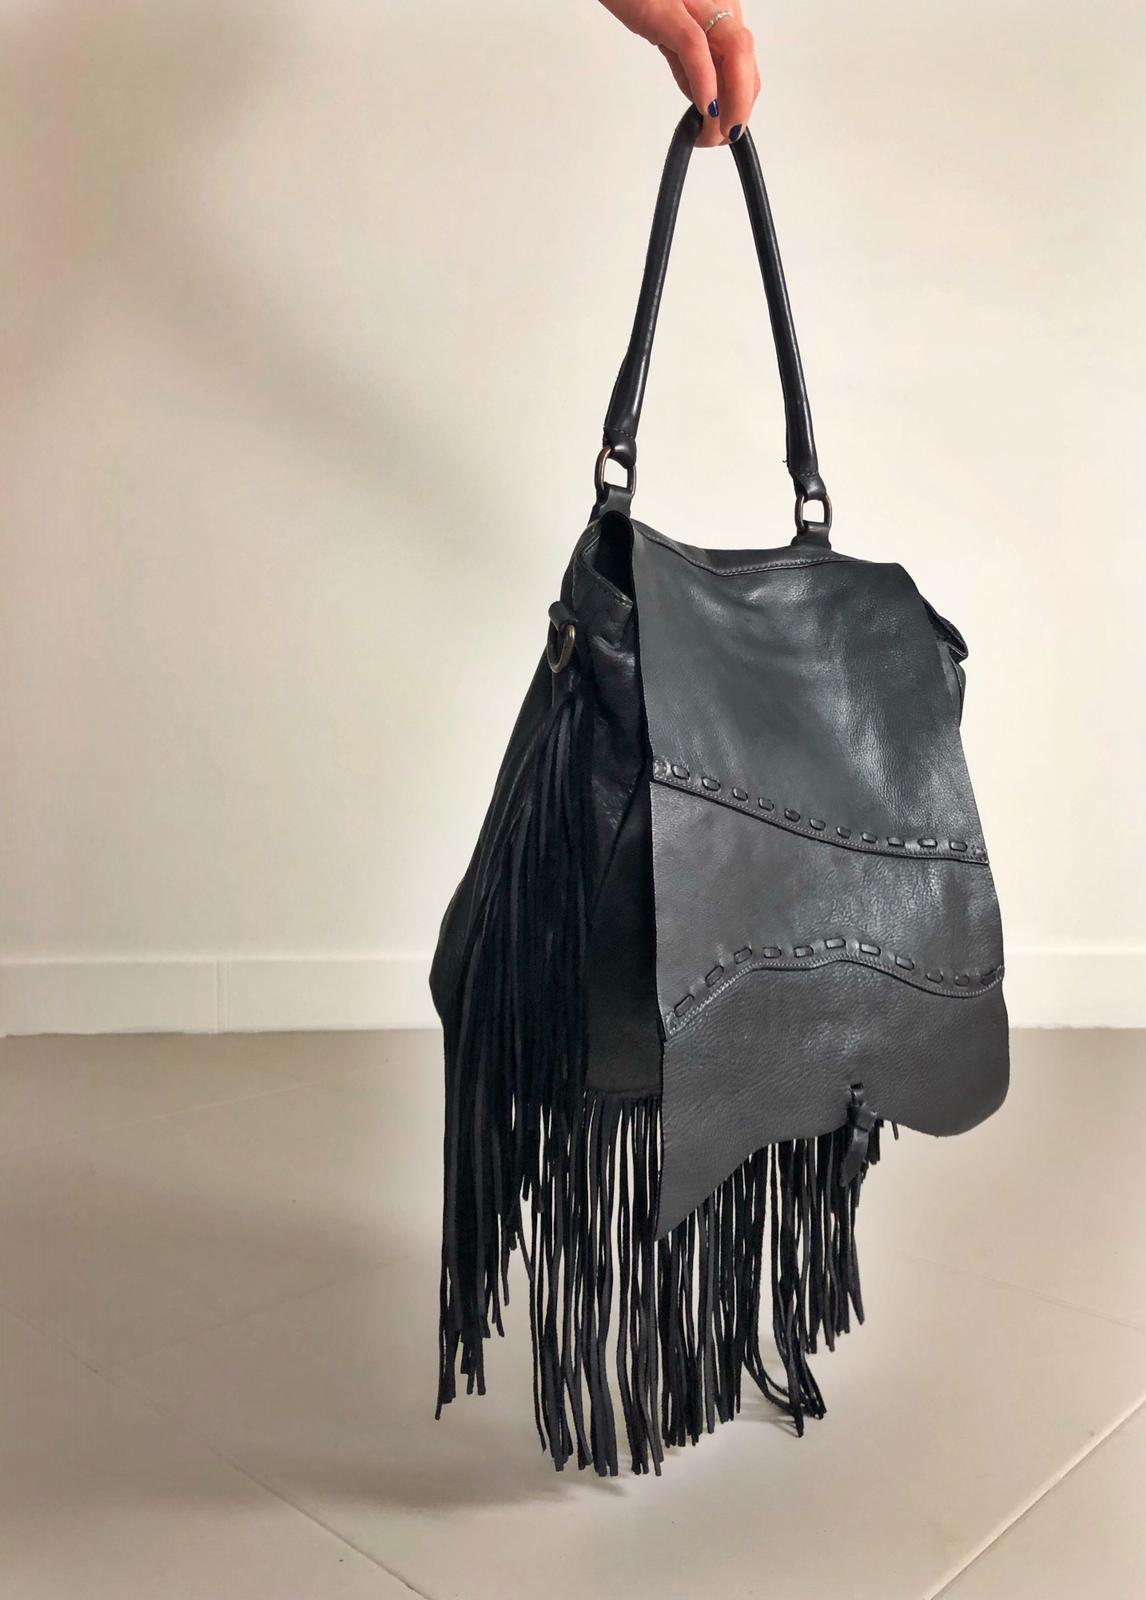 FRINGE BAG handamde leather bag  image 1